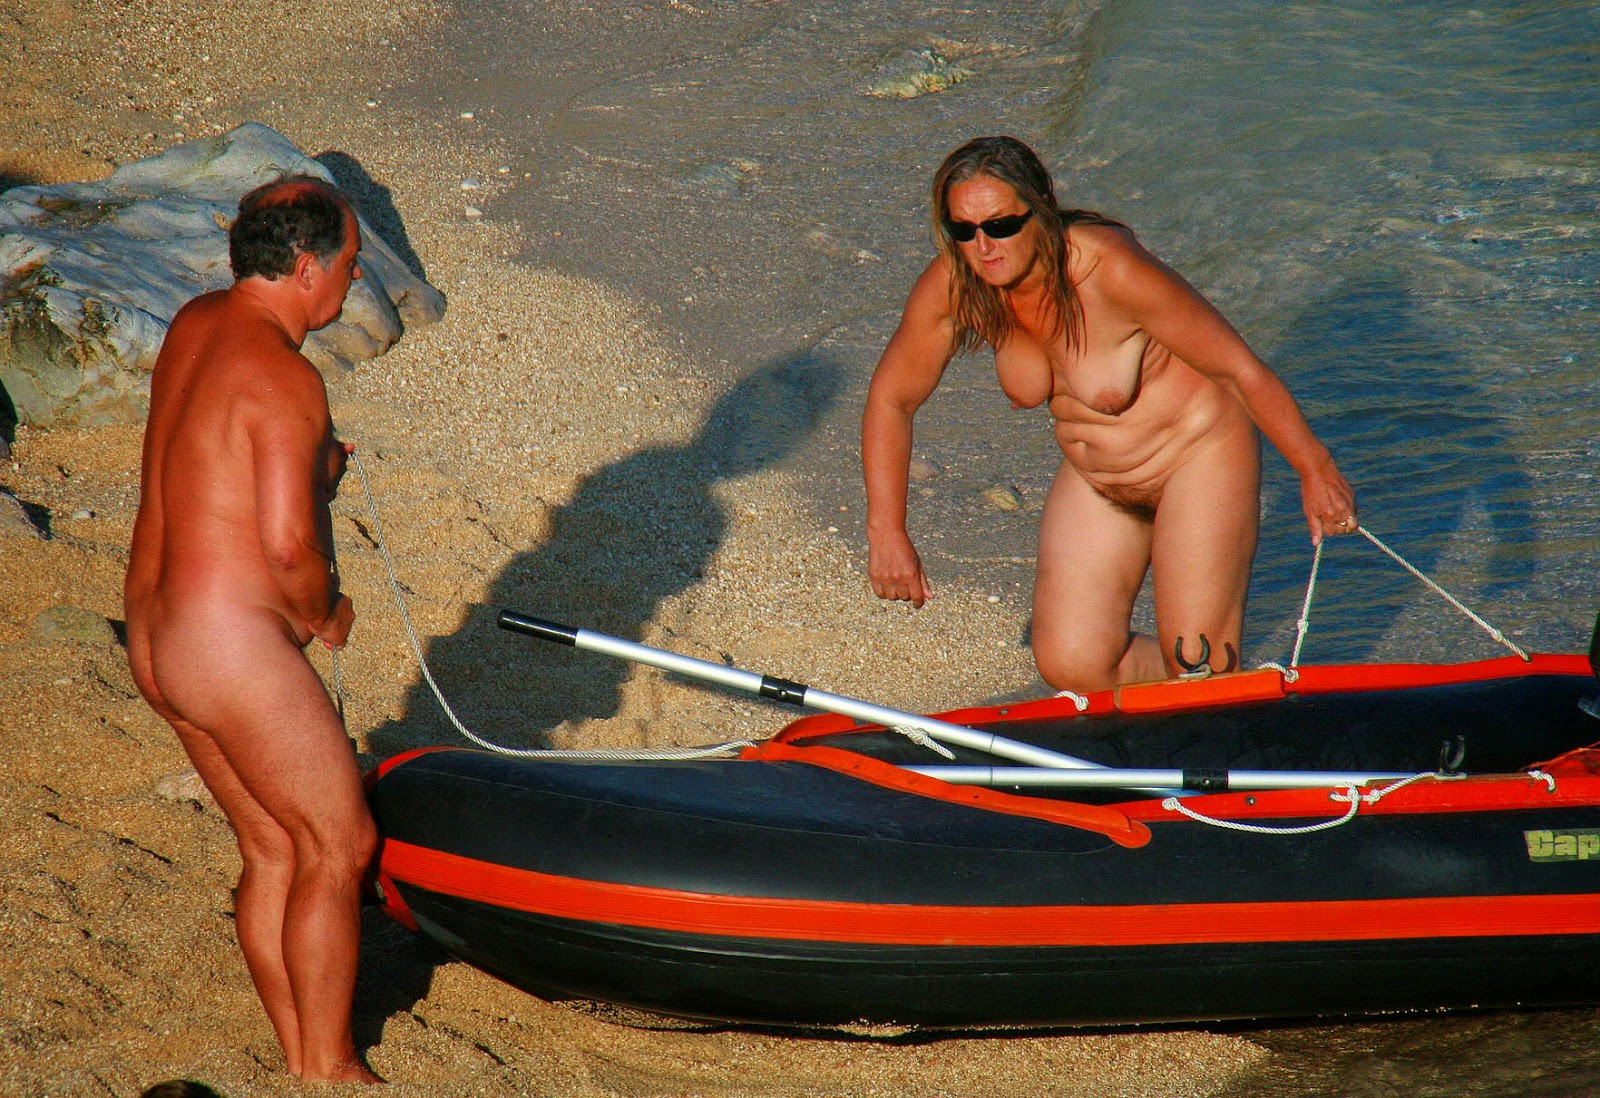 Nudism - Photo - Hq  Family Nudism - Camp And Boat-7732